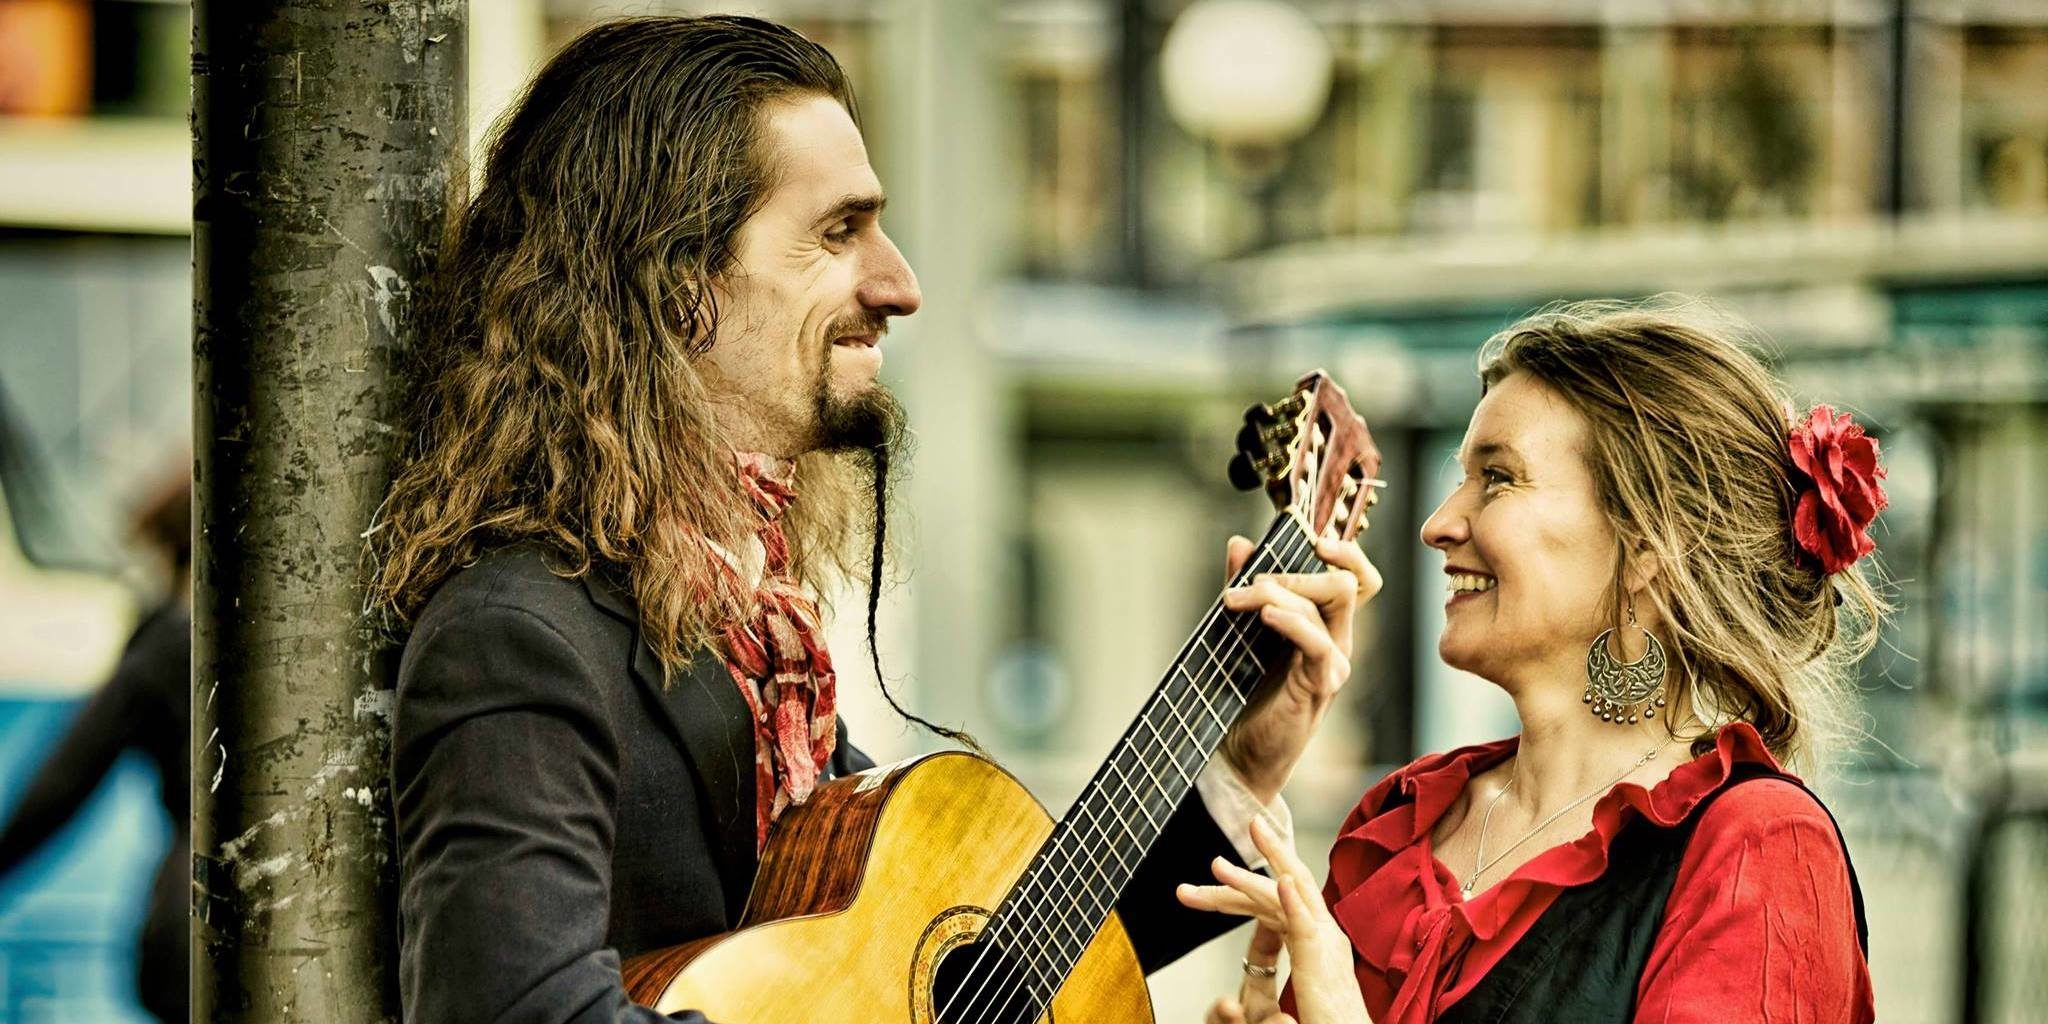 Marianne and Emil, laughing together. Emil is holding a guitar.